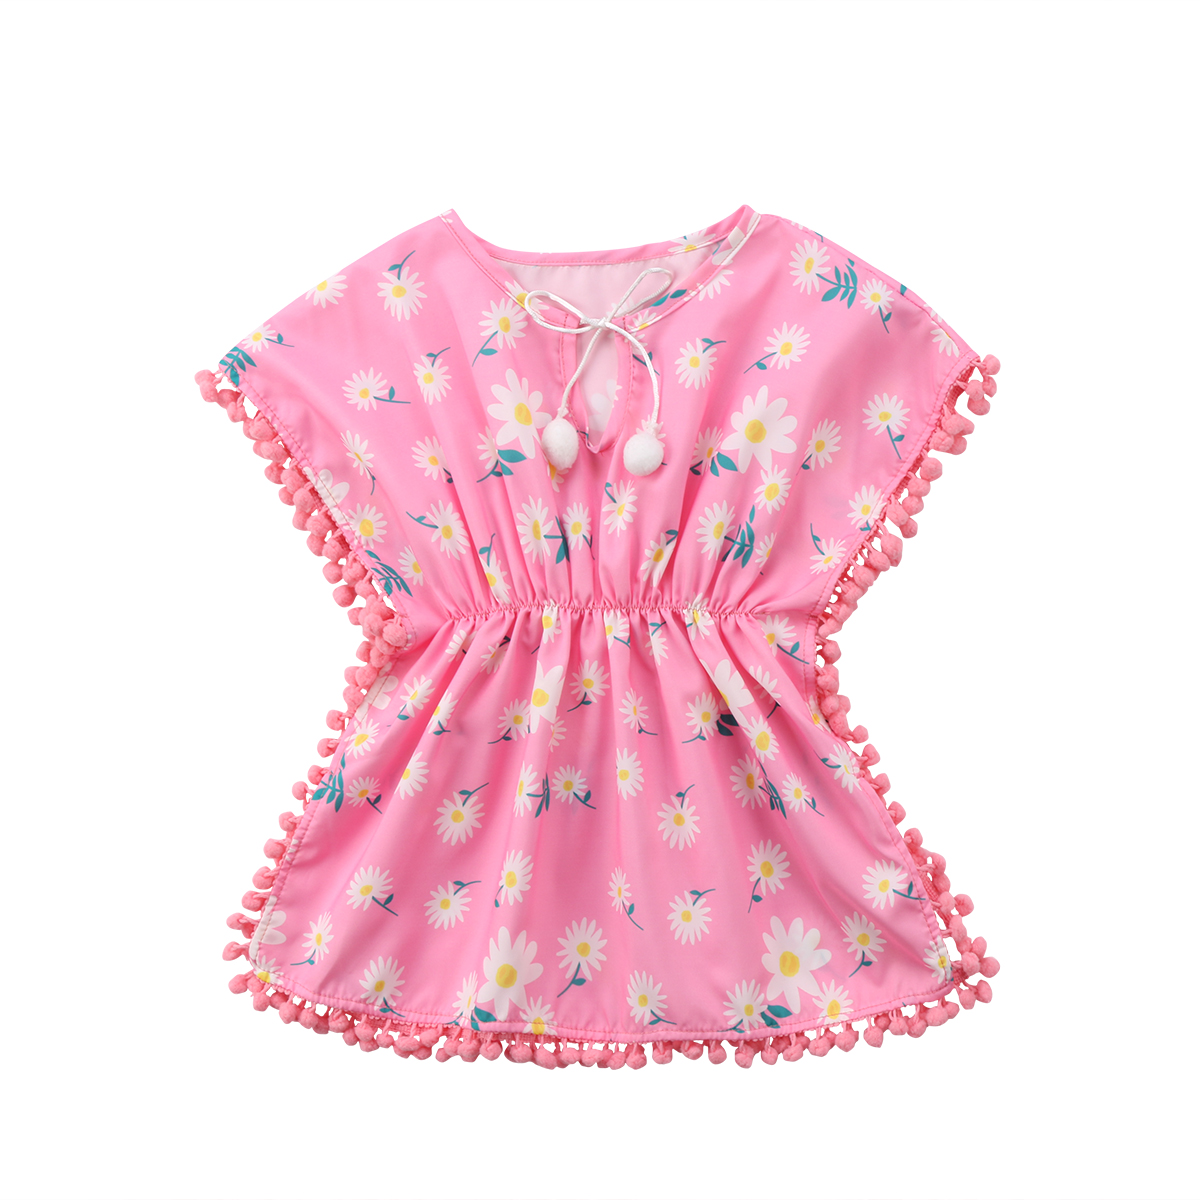 Toddler Kids Girls Floral Retro Pom Pom Shirt Dress Bowknot Party Cute Clothing